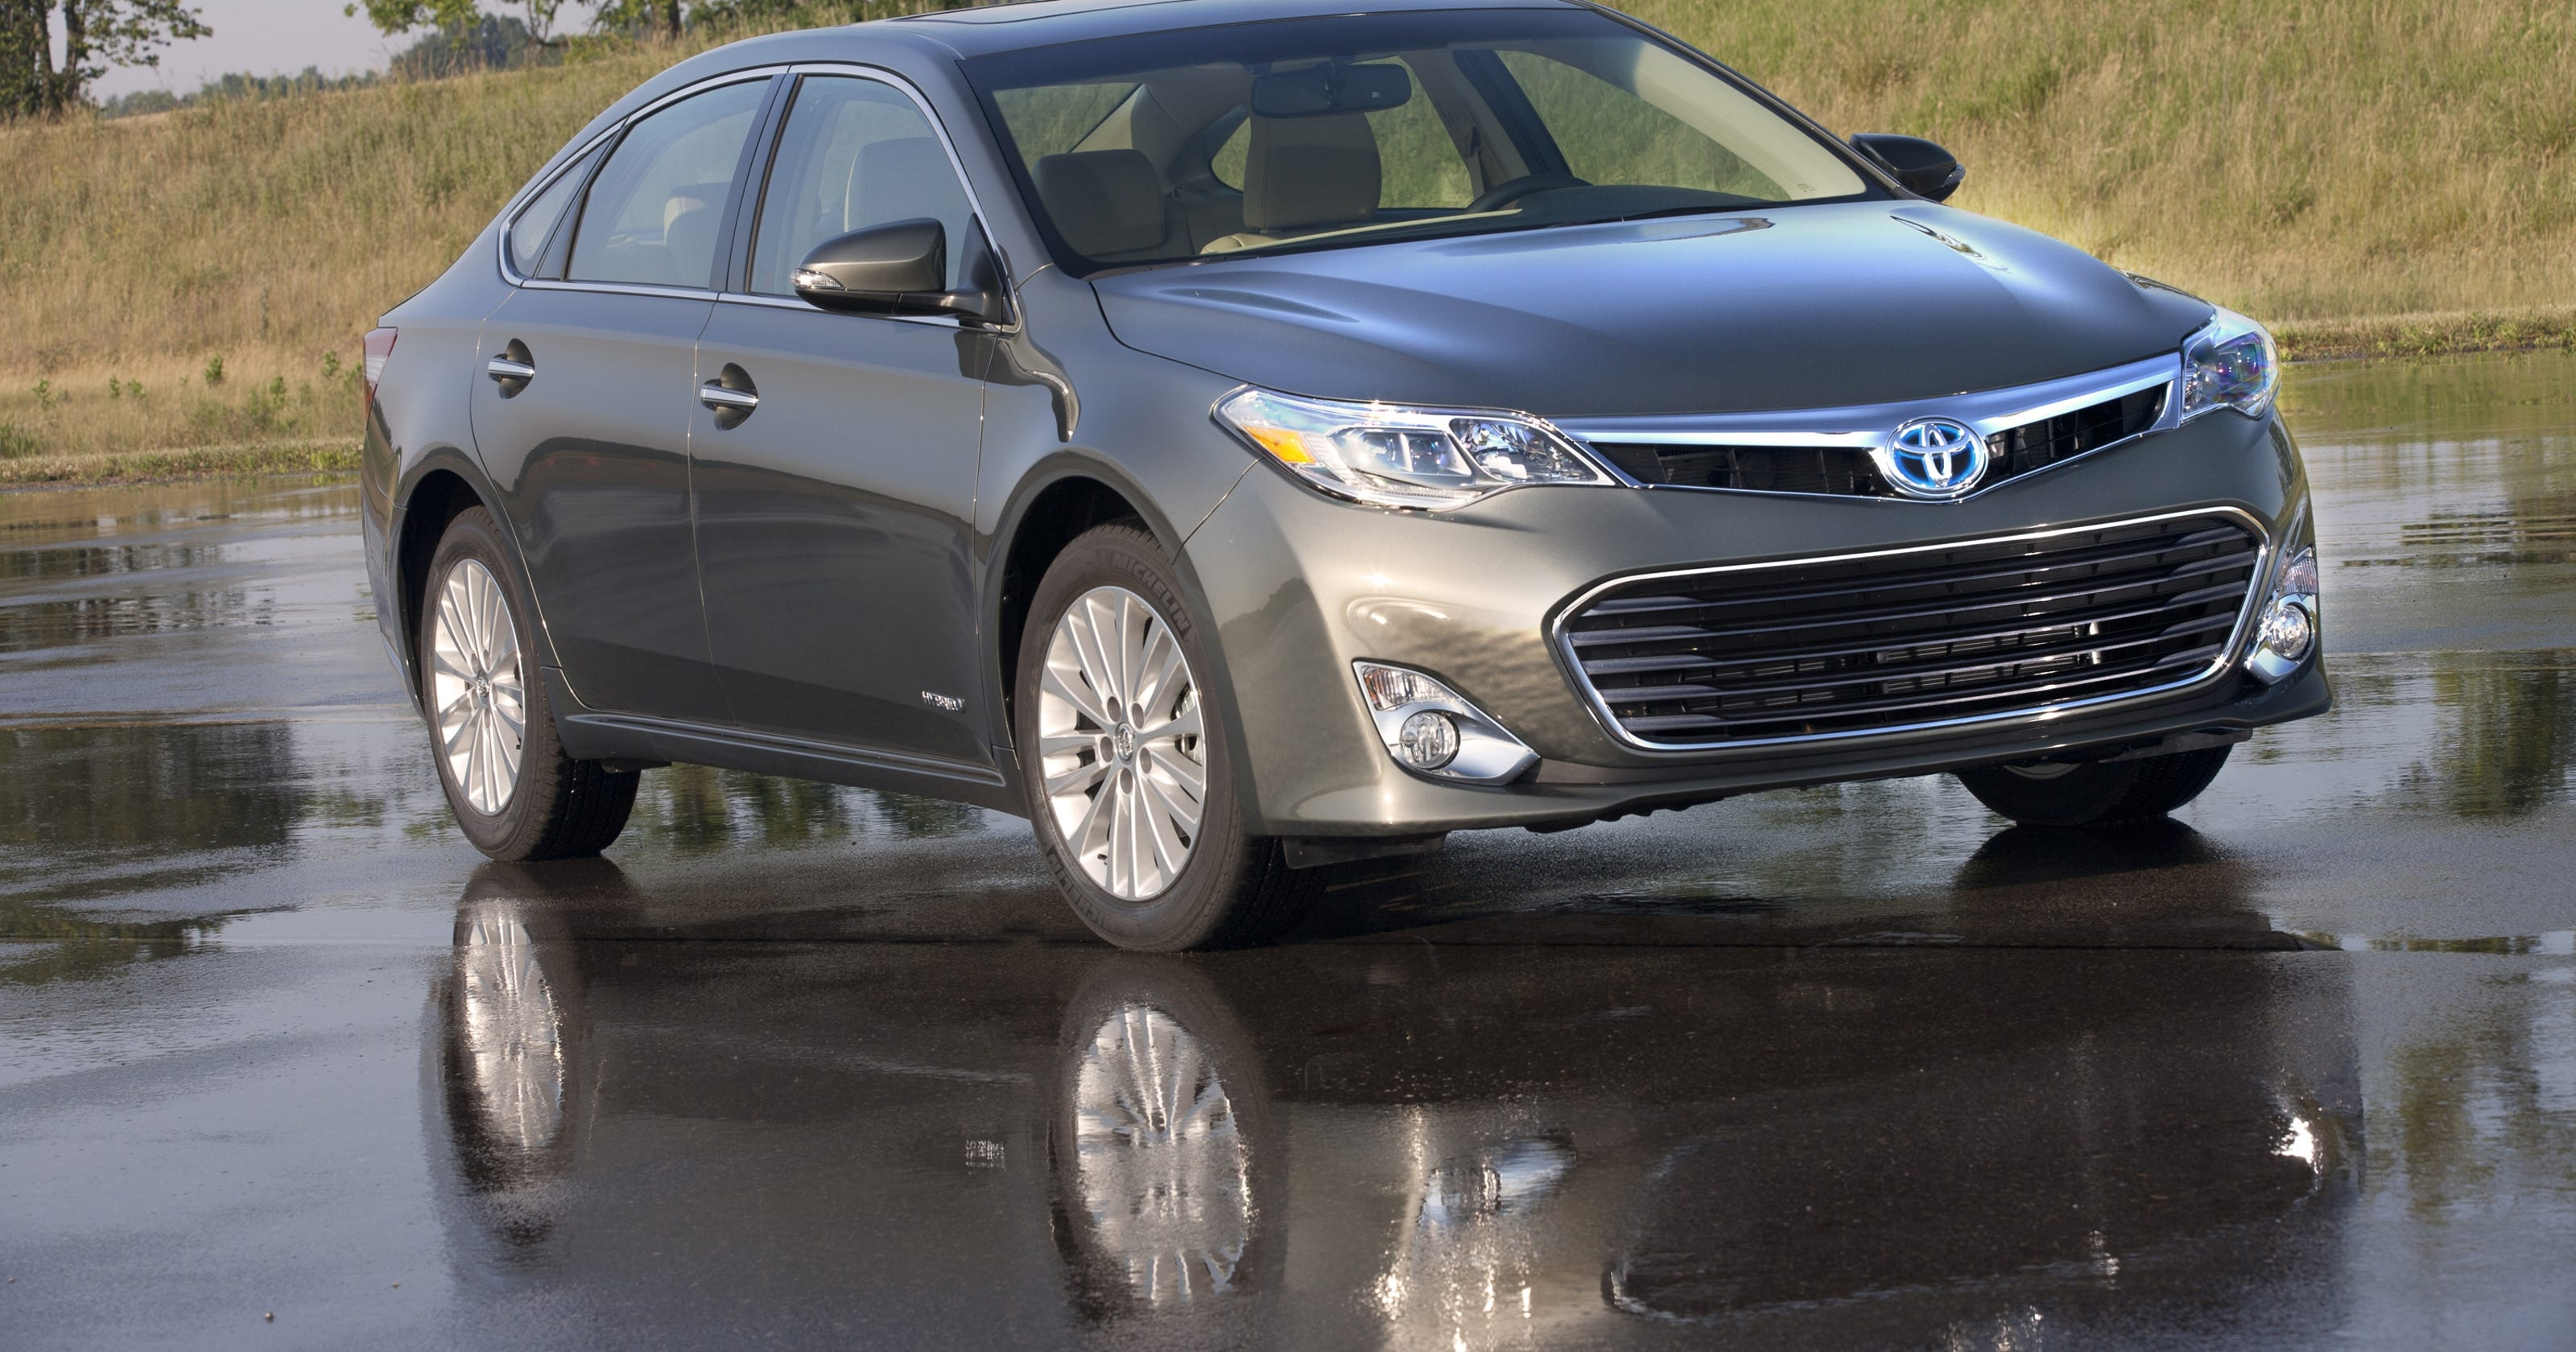 sedan avalon xle reviews price toyota exterior features photos